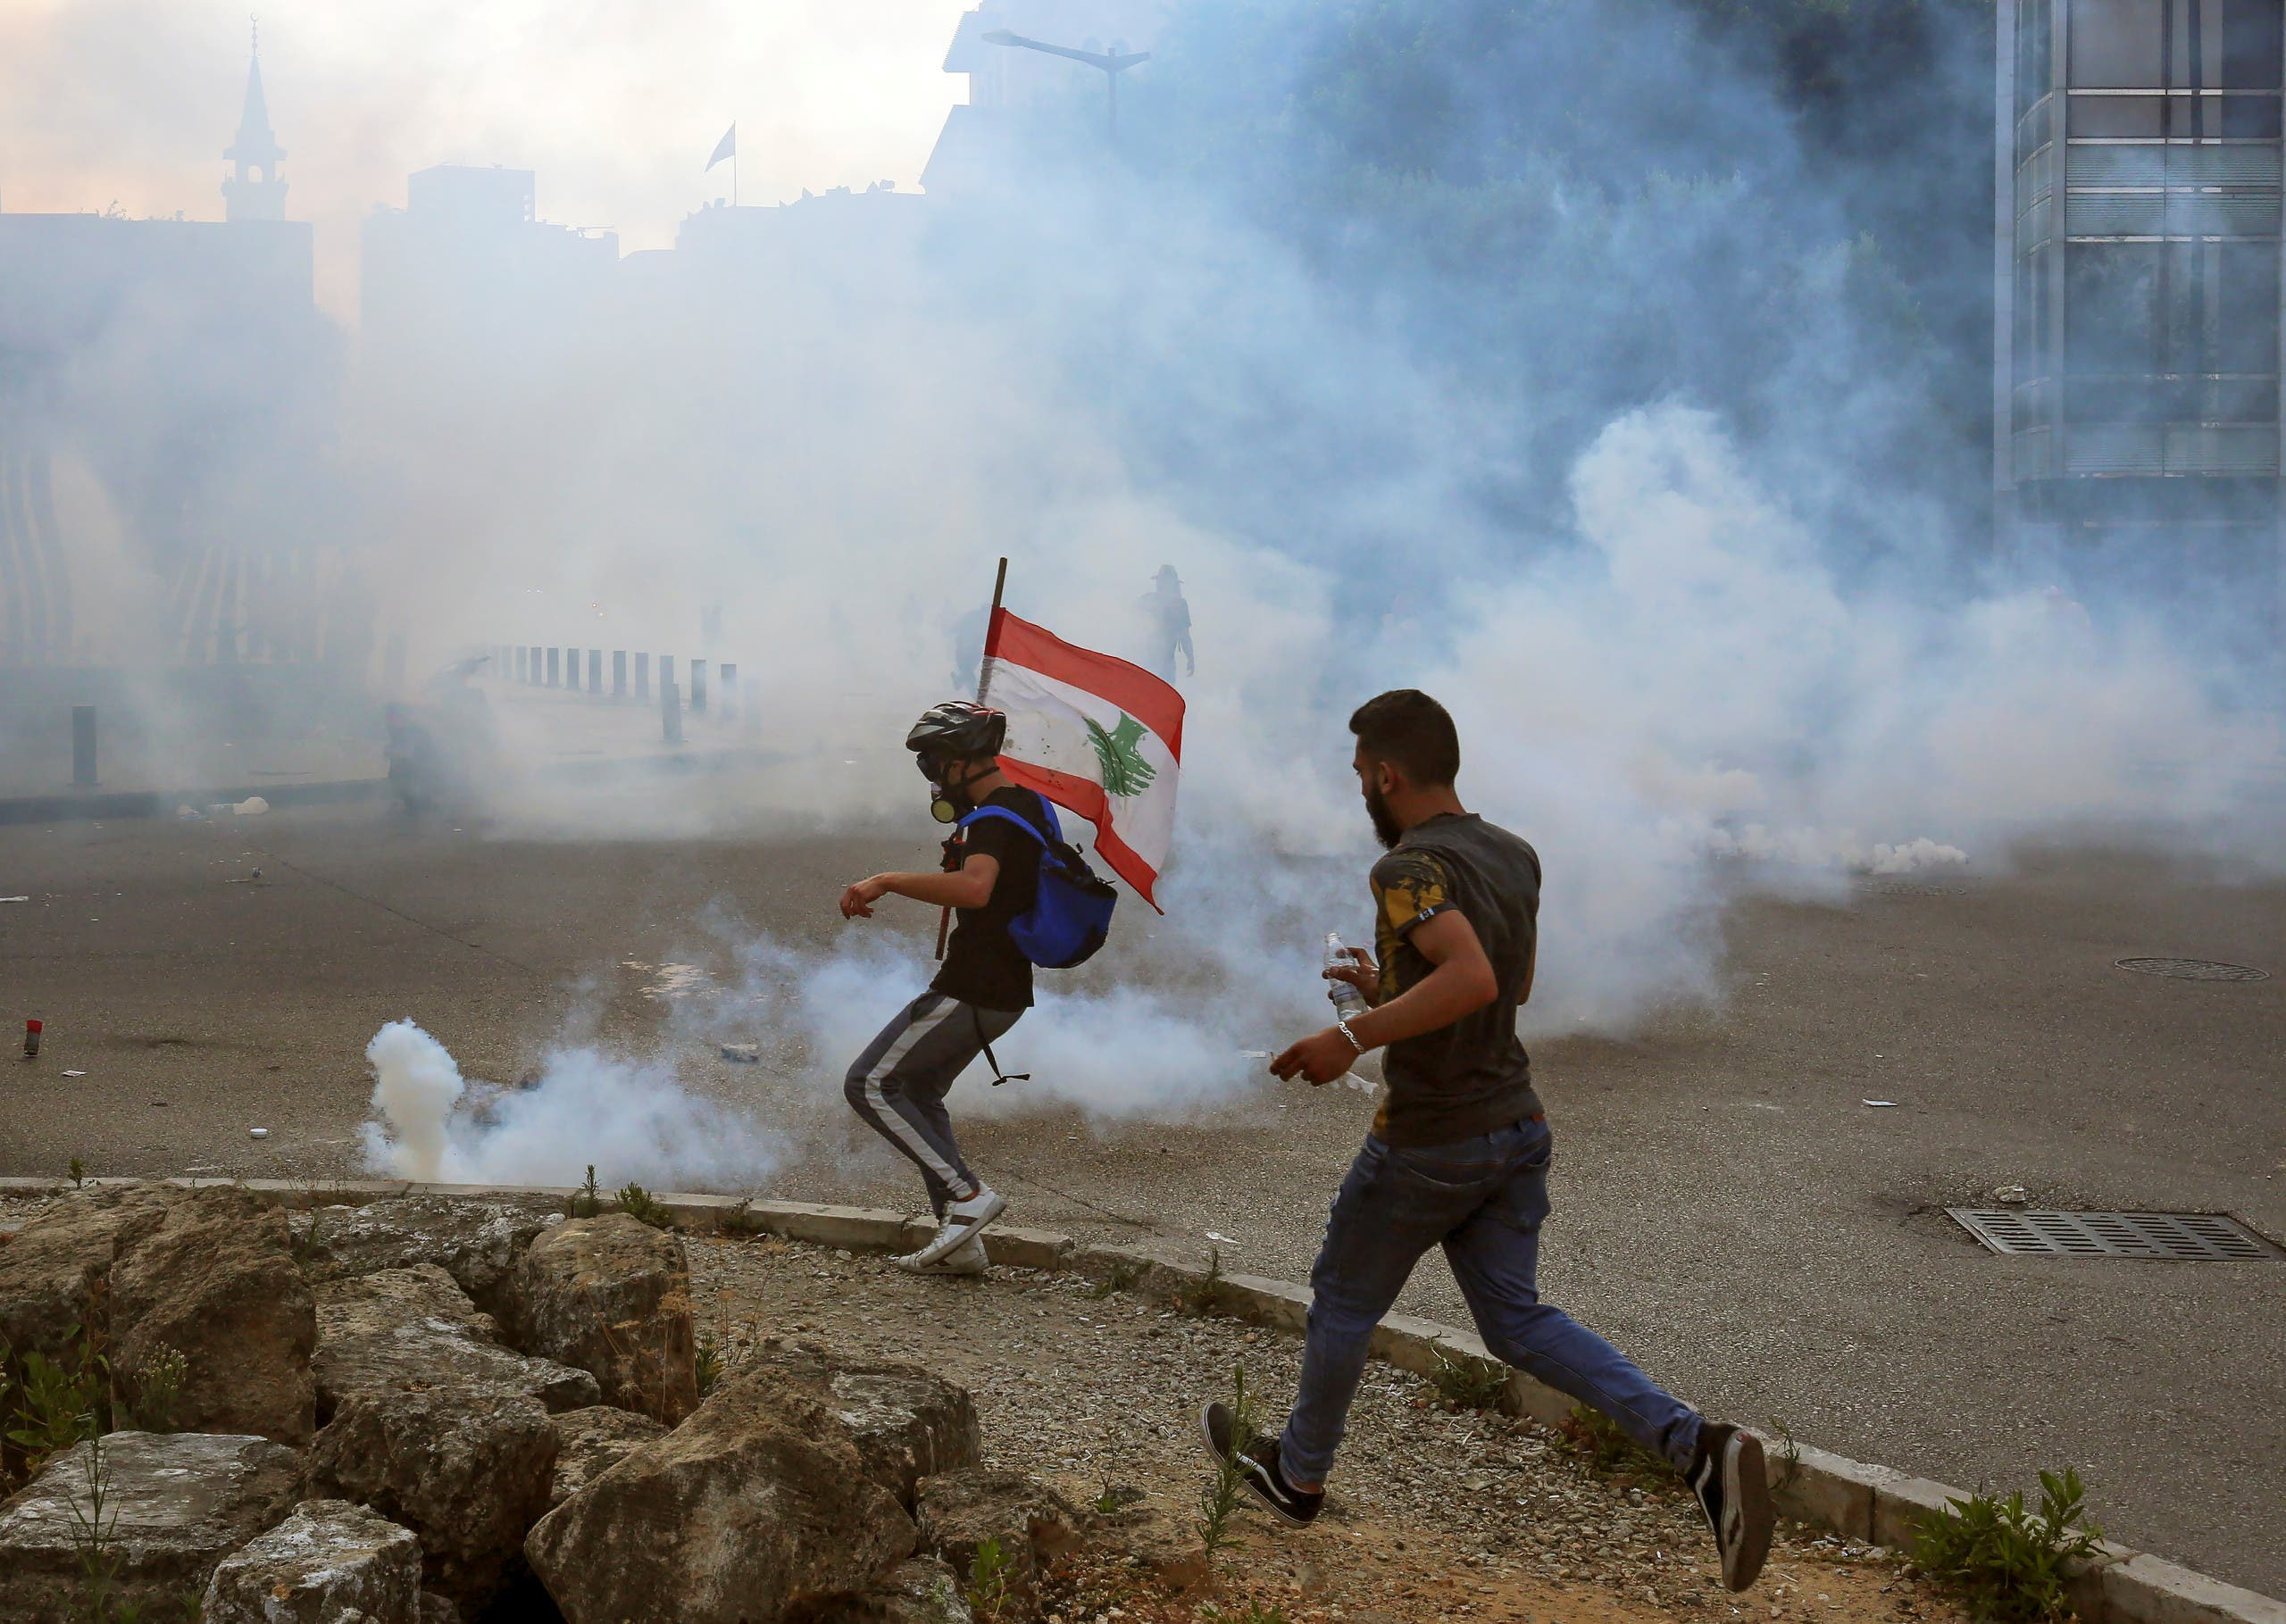 Demonstrators run amid a cloud of tear gas during a protest against the government performance and worsening economic conditions, in Beirut, Lebanon June 6, 2020. (Reuters)